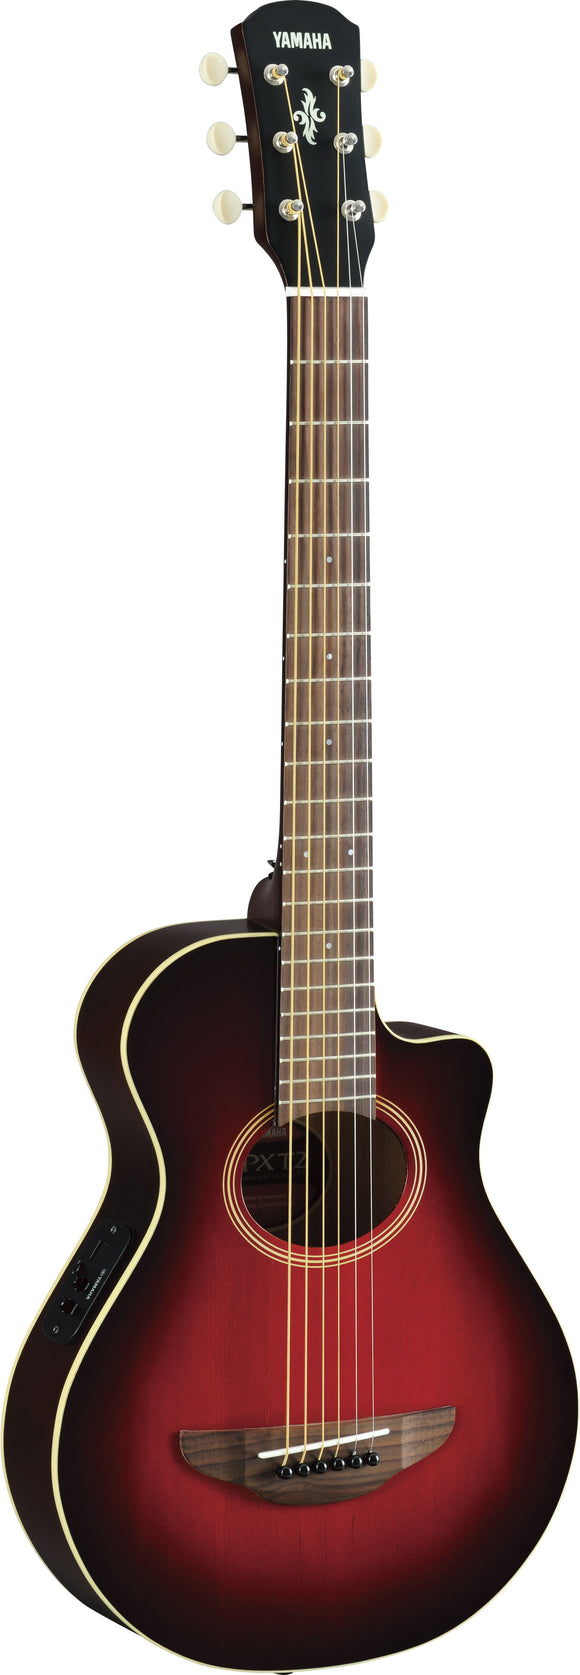 Yamaha APXT2 3/4 size acoustic-electric guitar (Dark Red Burst)